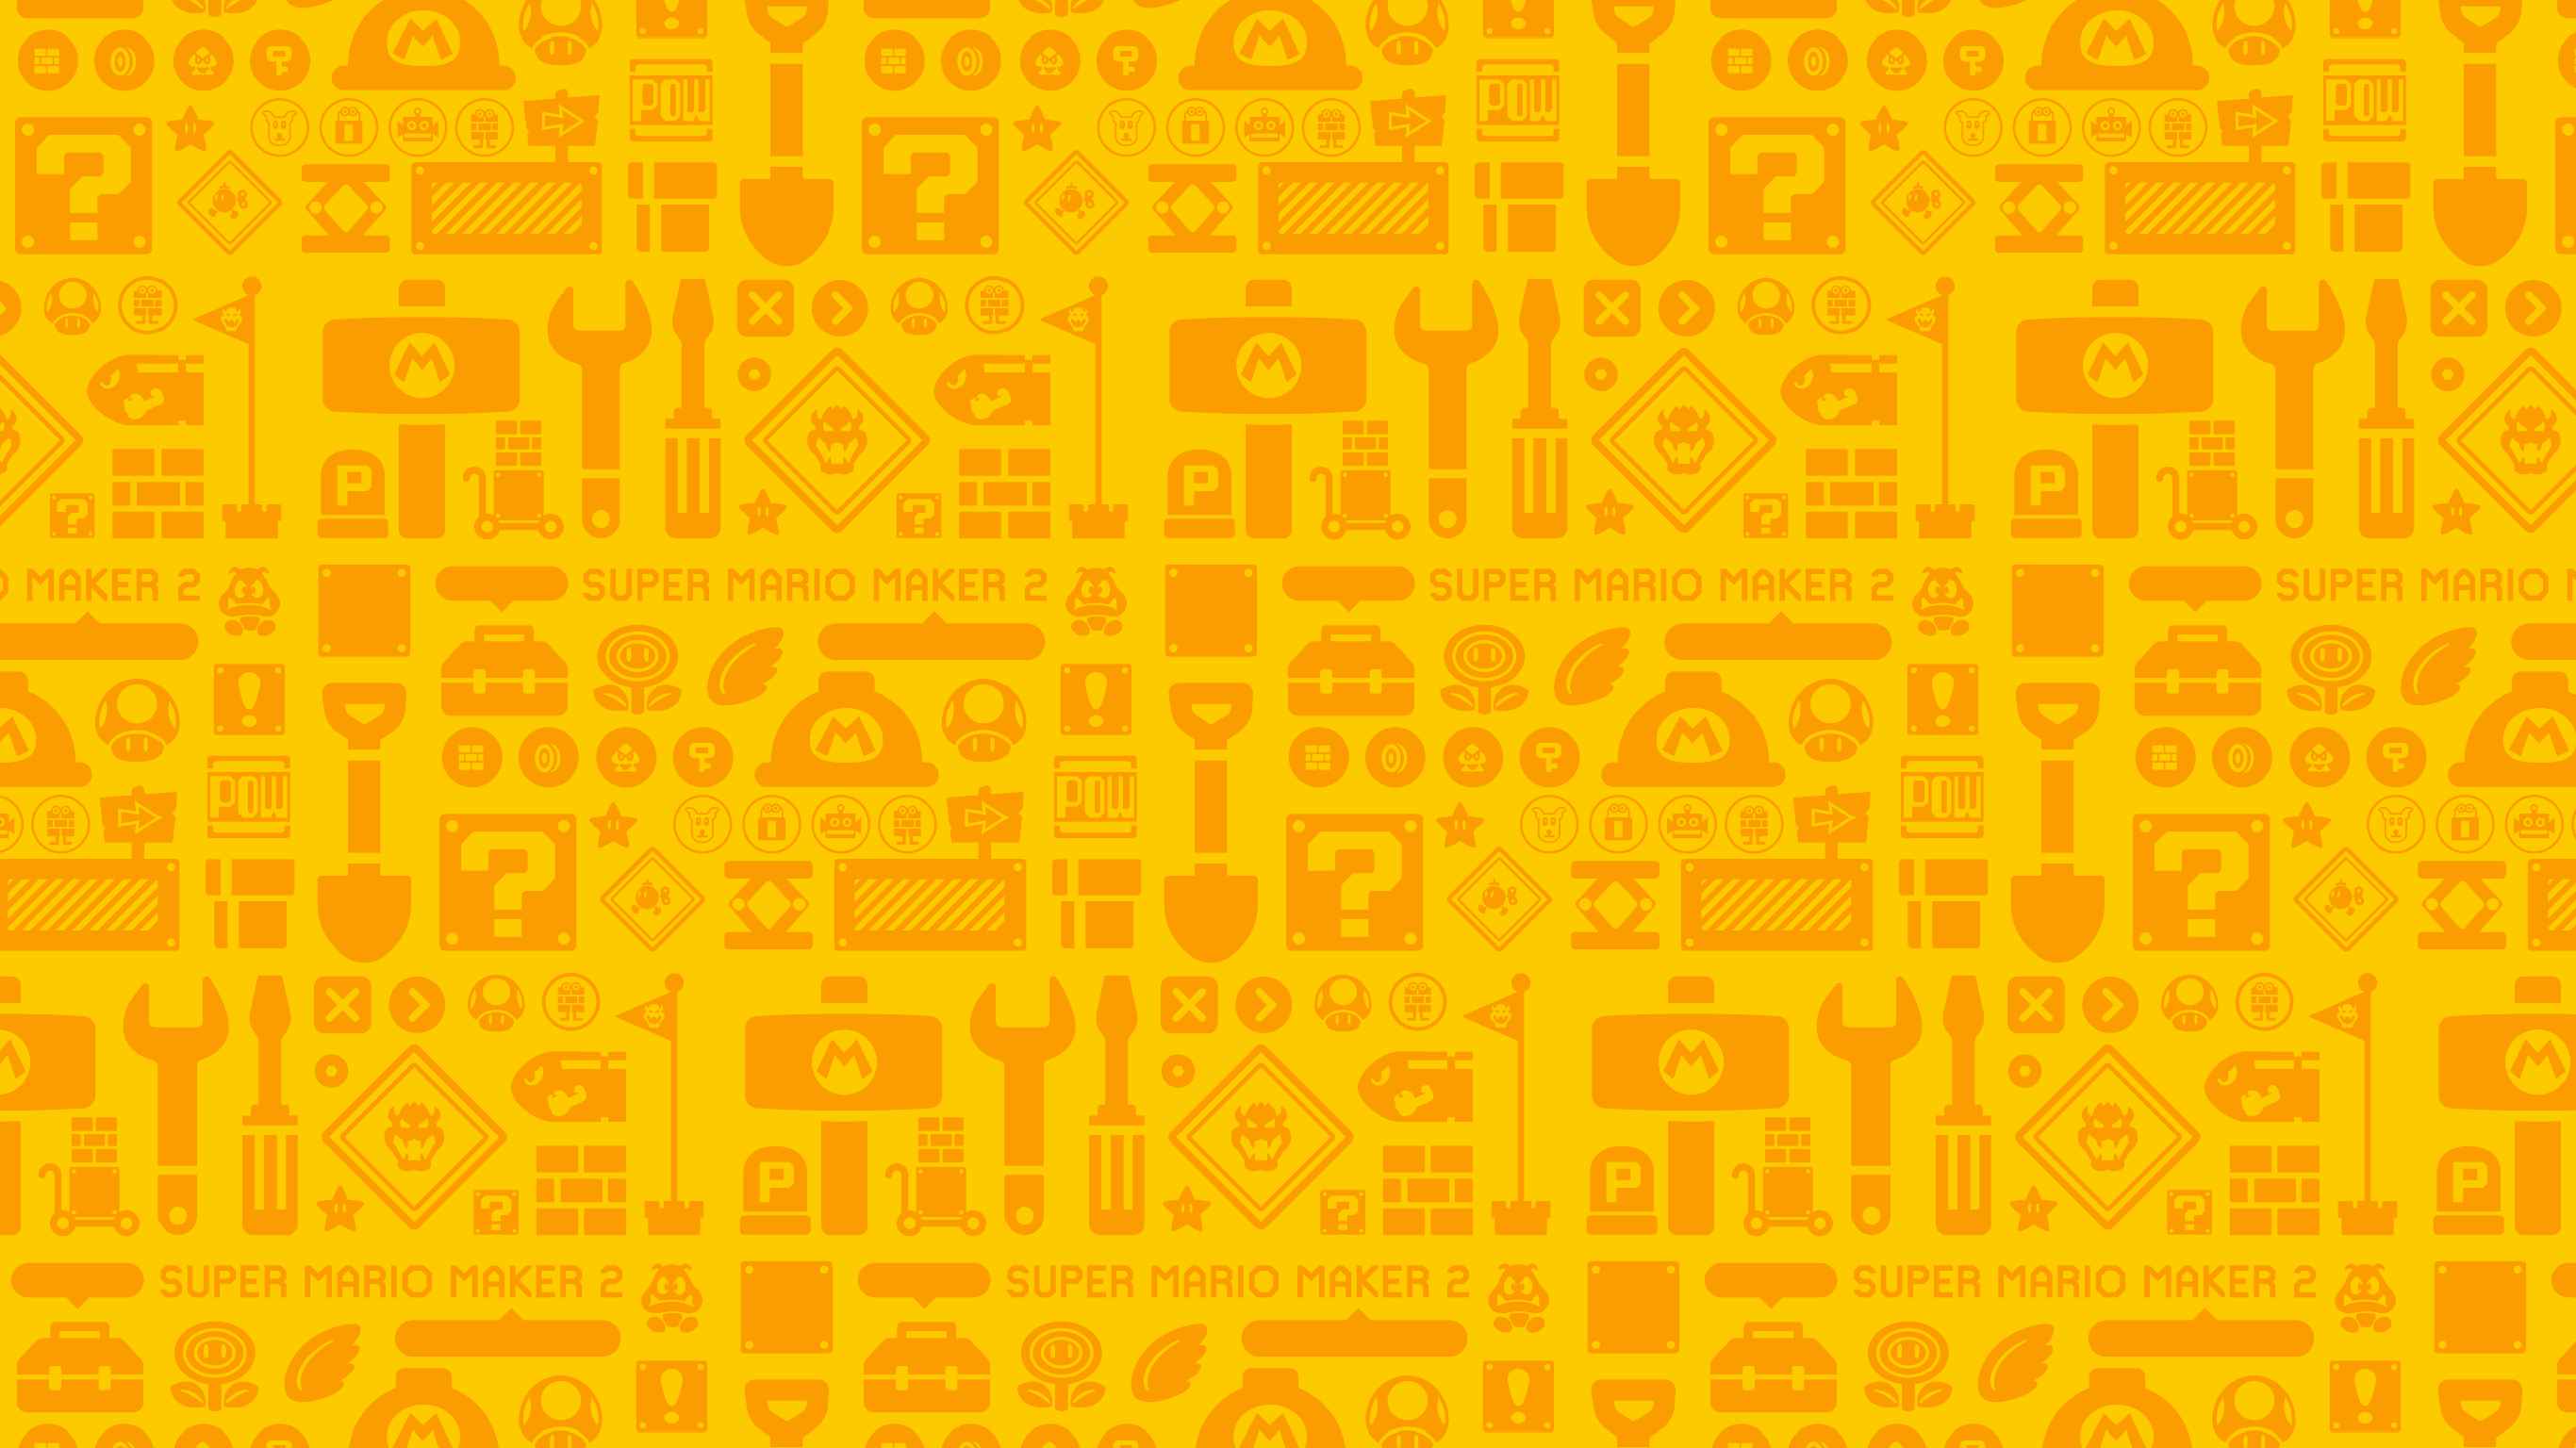 Wallpaper Super Mario Maker 2 By Wolforan On Deviantart